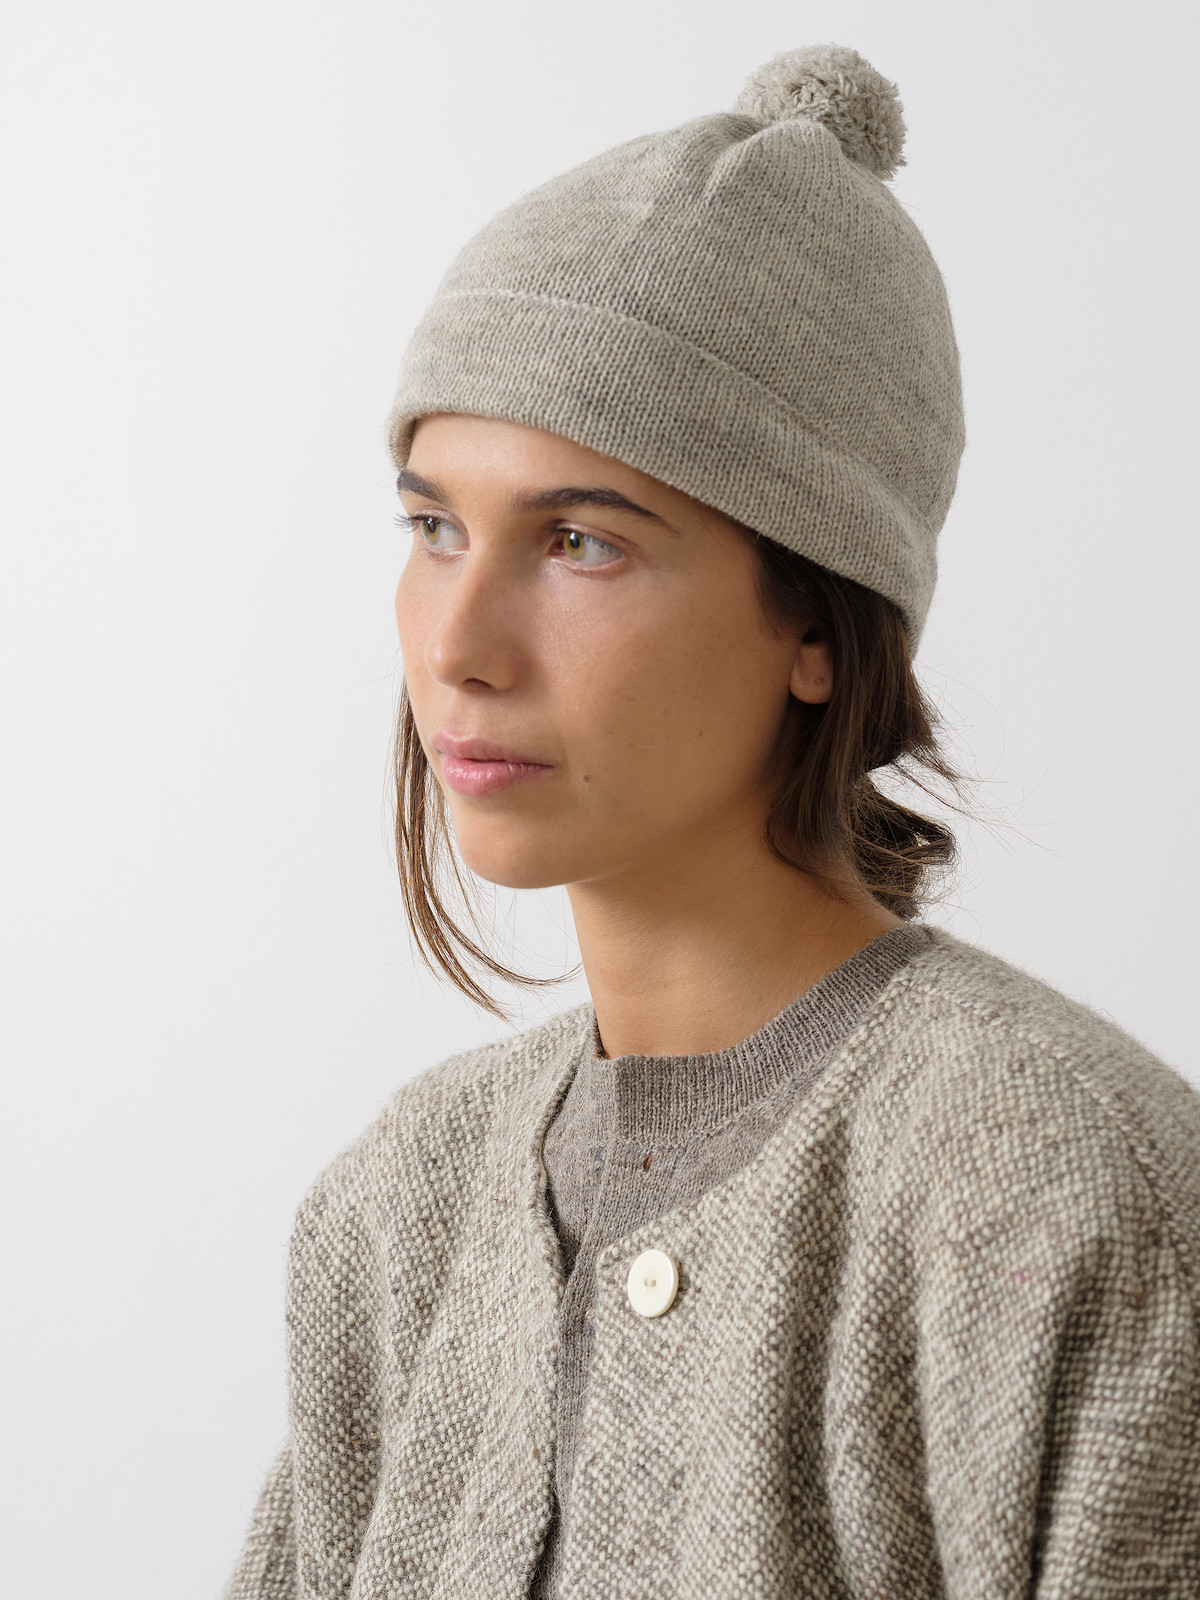 the Beanie Image